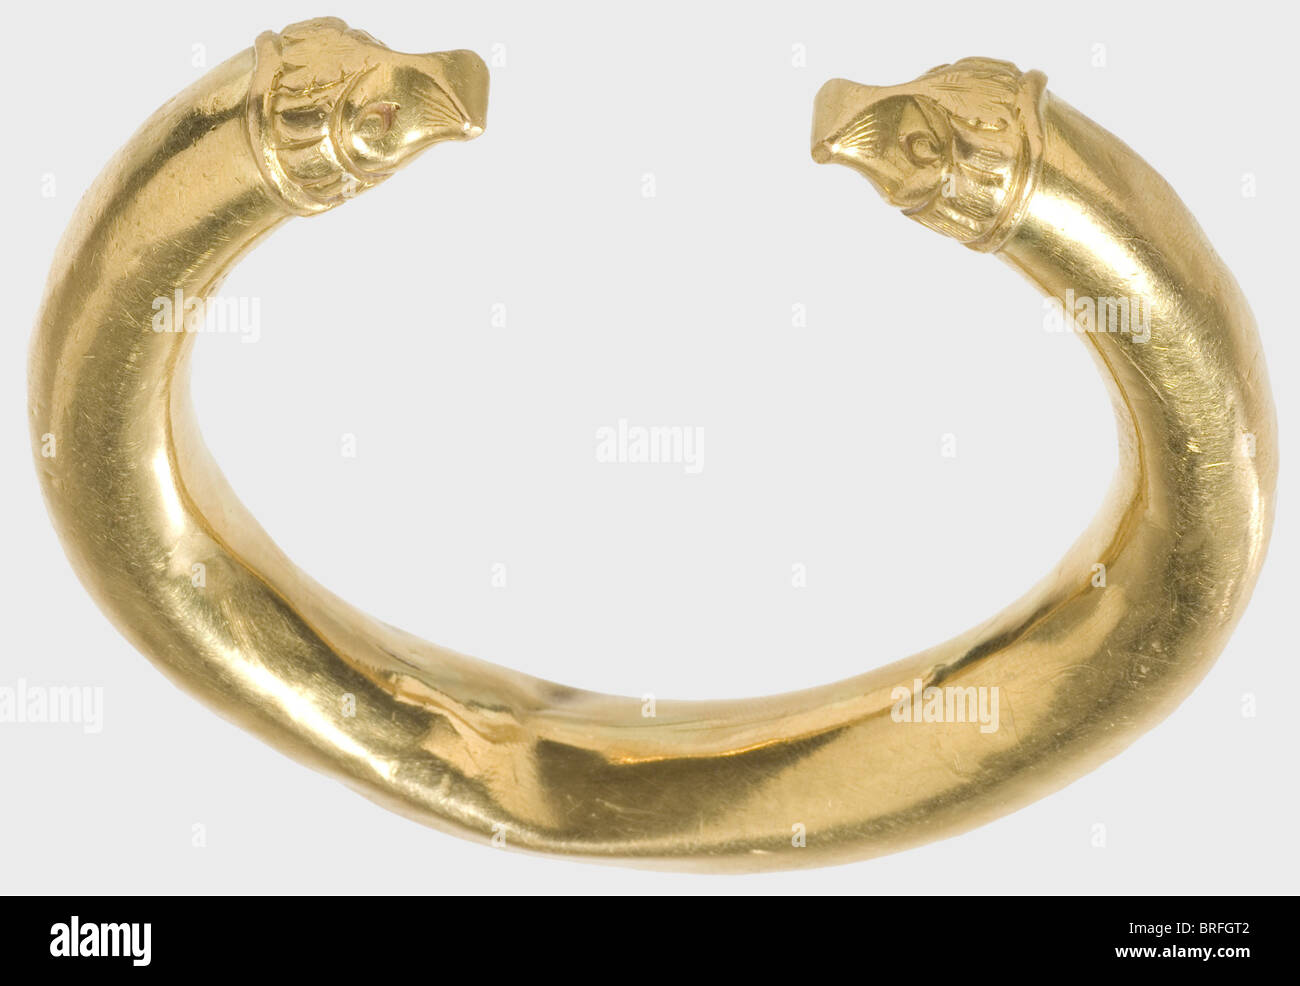 A golden Hellenistic bracelet, 3rd/2nd century B.C. Hollow, double tapered bracelet with stylized animal head finials. - Stock Image